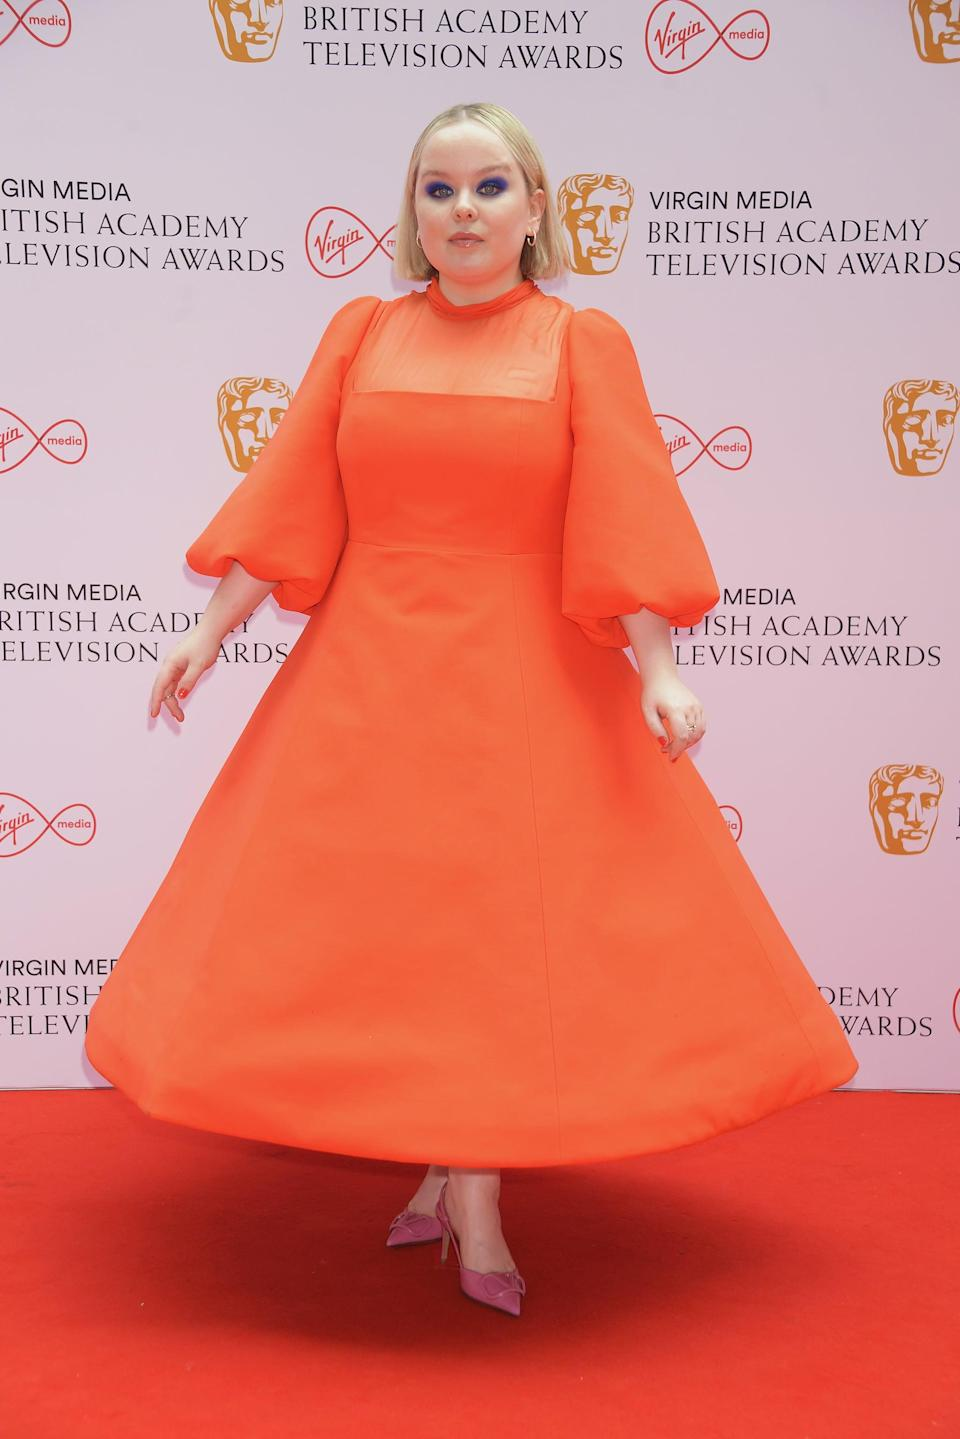 LONDON, ENGLAND - JUNE 06:   Nicola Coughlan arrives at the Virgin Media British Academy Television Awards 2021 at Television Centre on June 6, 2021 in London, England. (Photo by David M. Benett/Dave Benett/Getty Images)